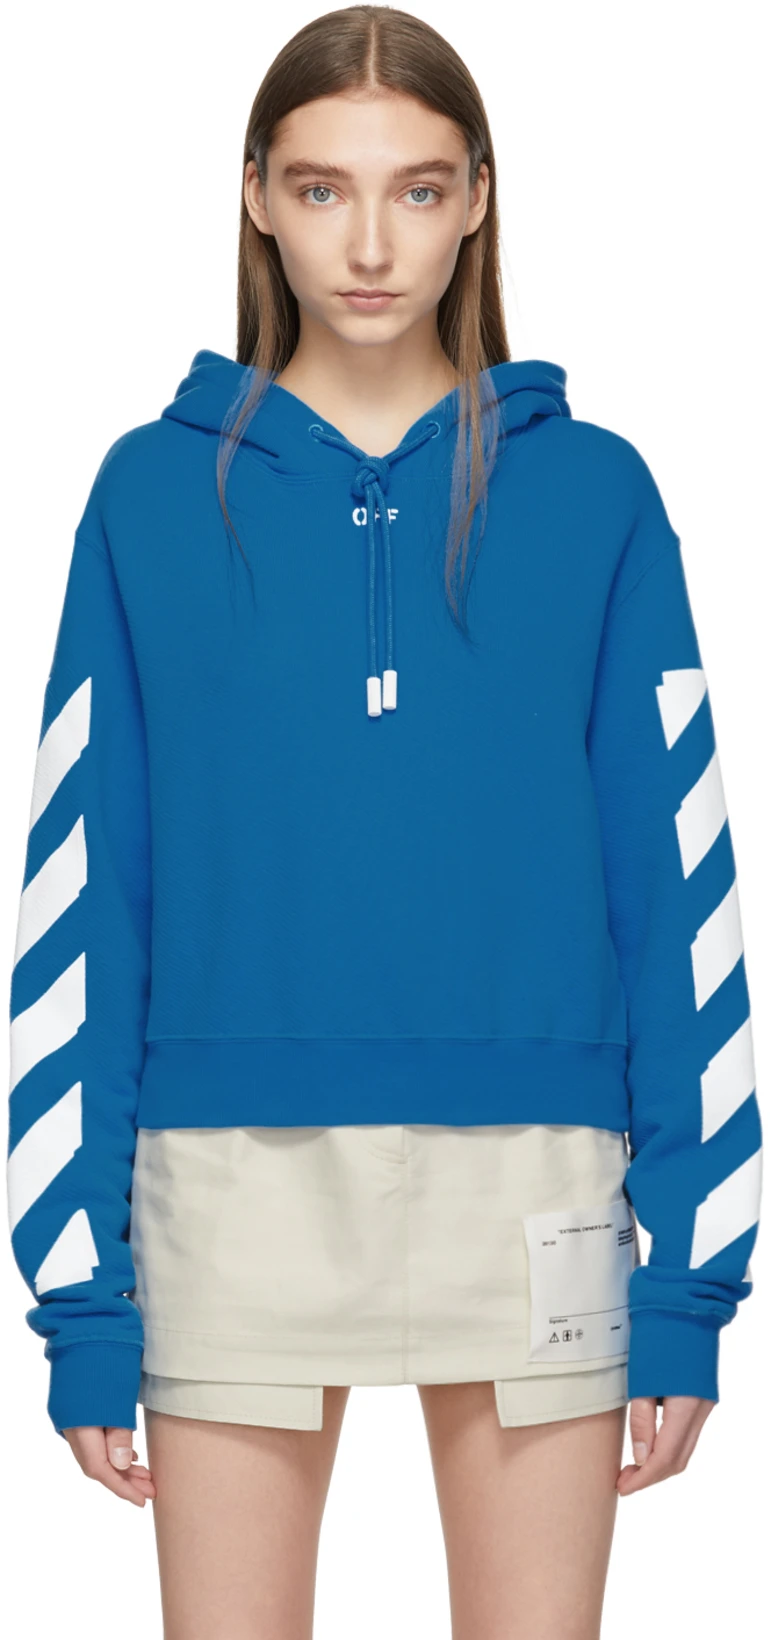 Off White Blue Diag Crop Hoodie Ssense Off White Clothing Cropped Hoodie Clothes [ 1640 x 771 Pixel ]